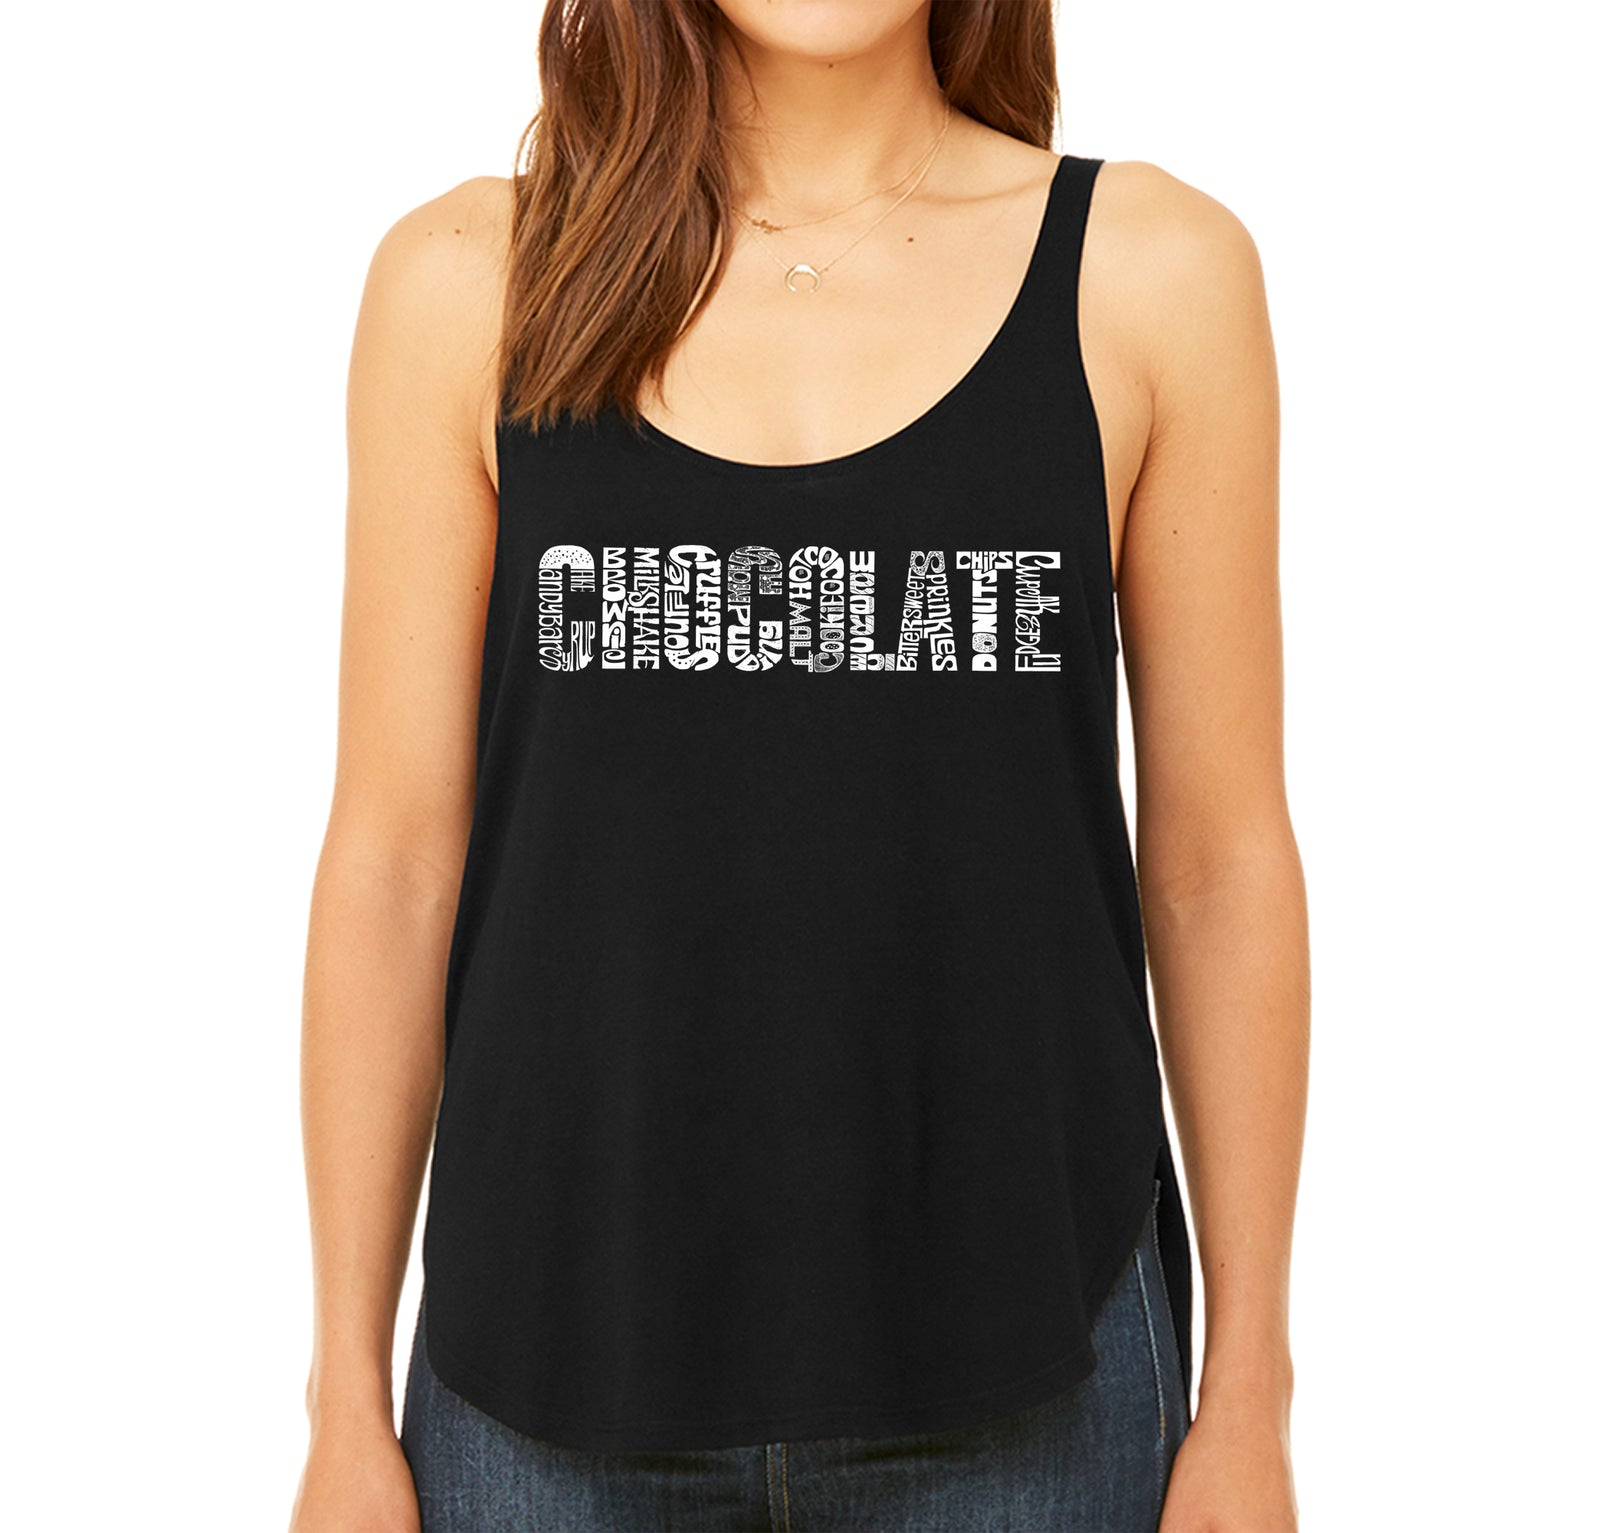 Women's Premium Word Art Flowy Tank Top - Different foods made with chocolate